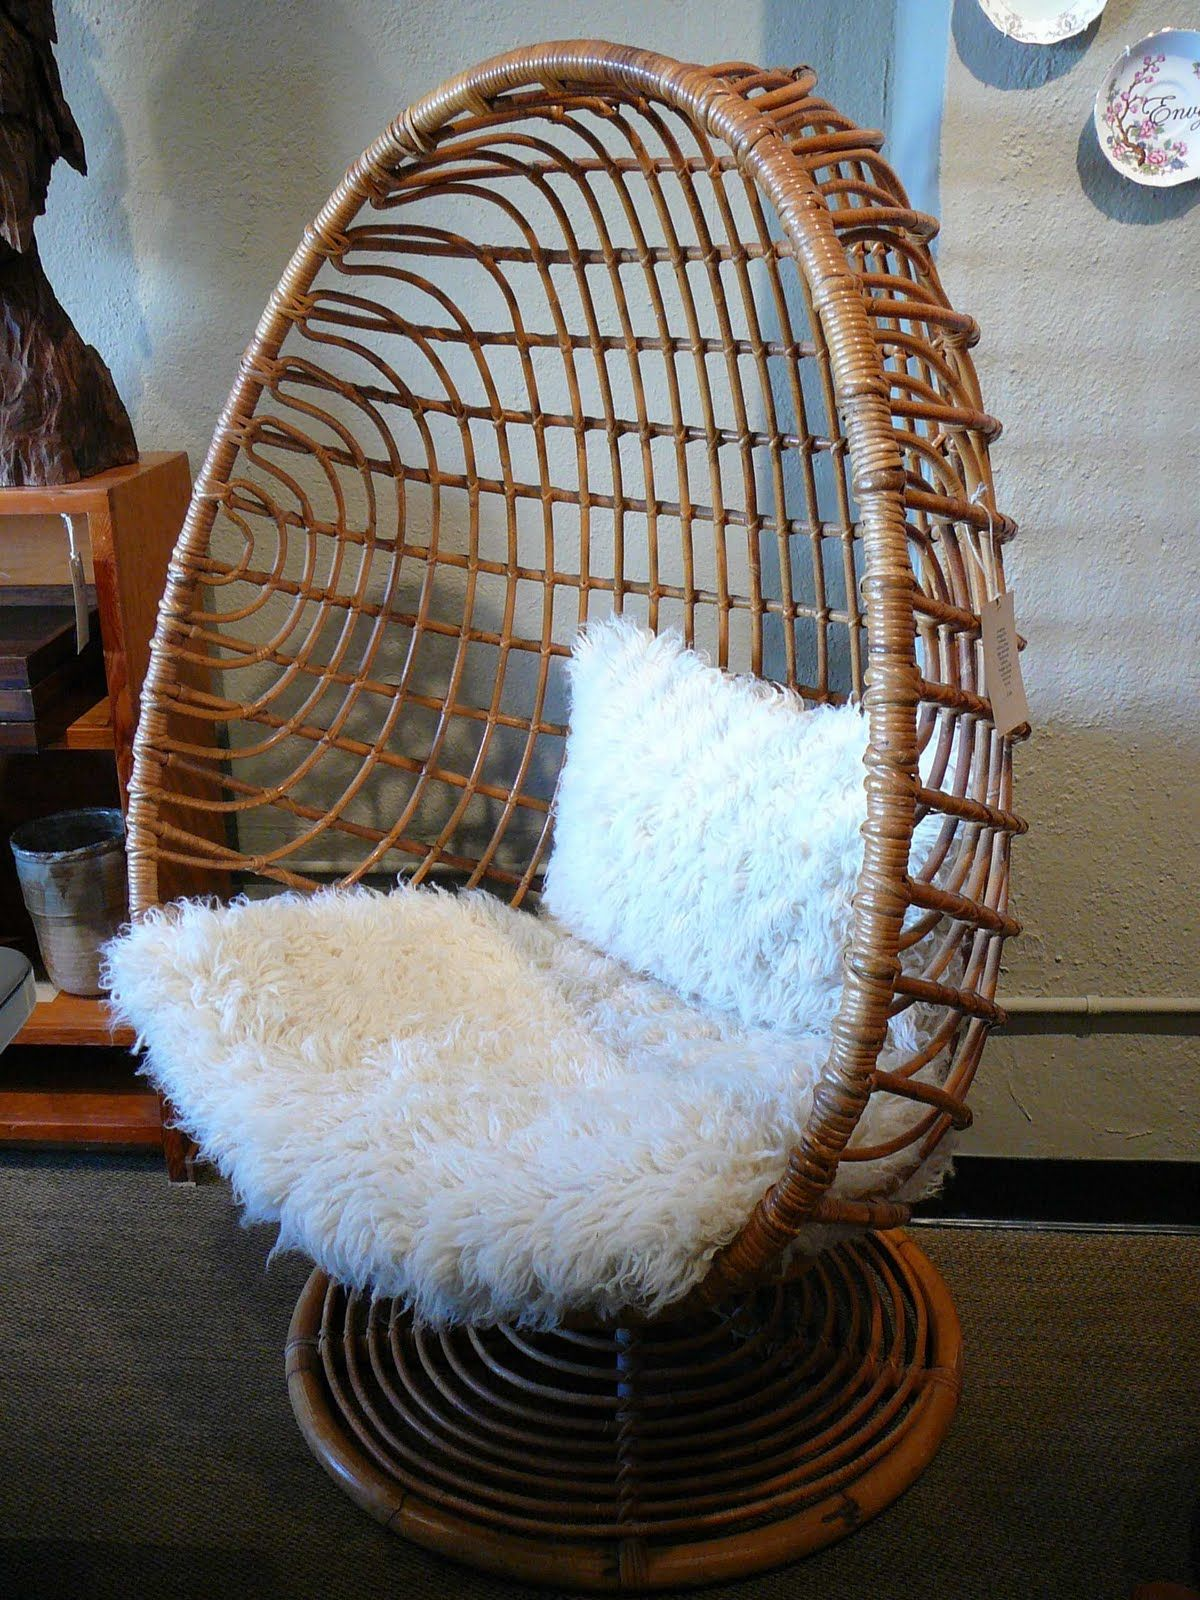 60 S Egg Chair It Looks Fuzzy Papasan Chair Comfy